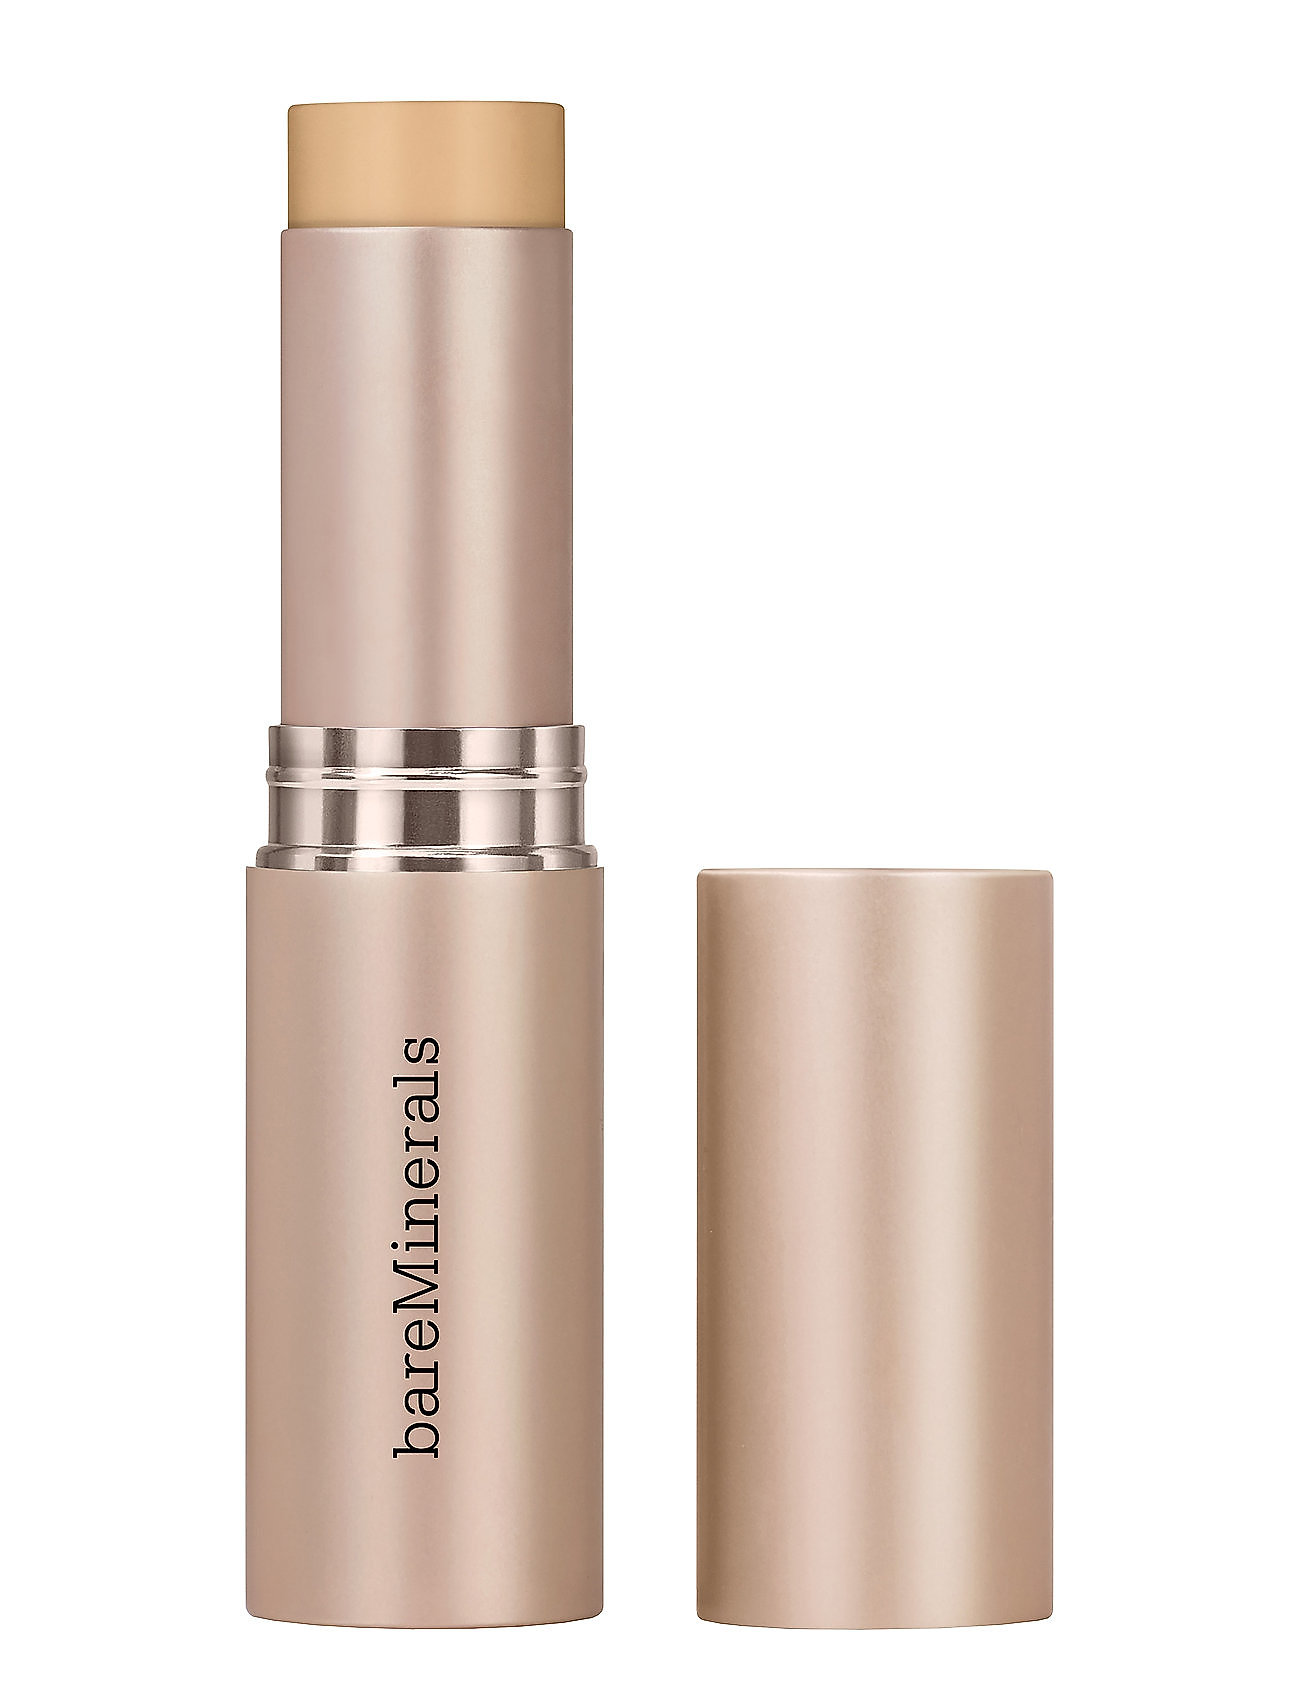 Image of Complexion Rescue Hydrating Foundation Stick Spf 25 Foundation Makeup BareMinerals (3250586891)